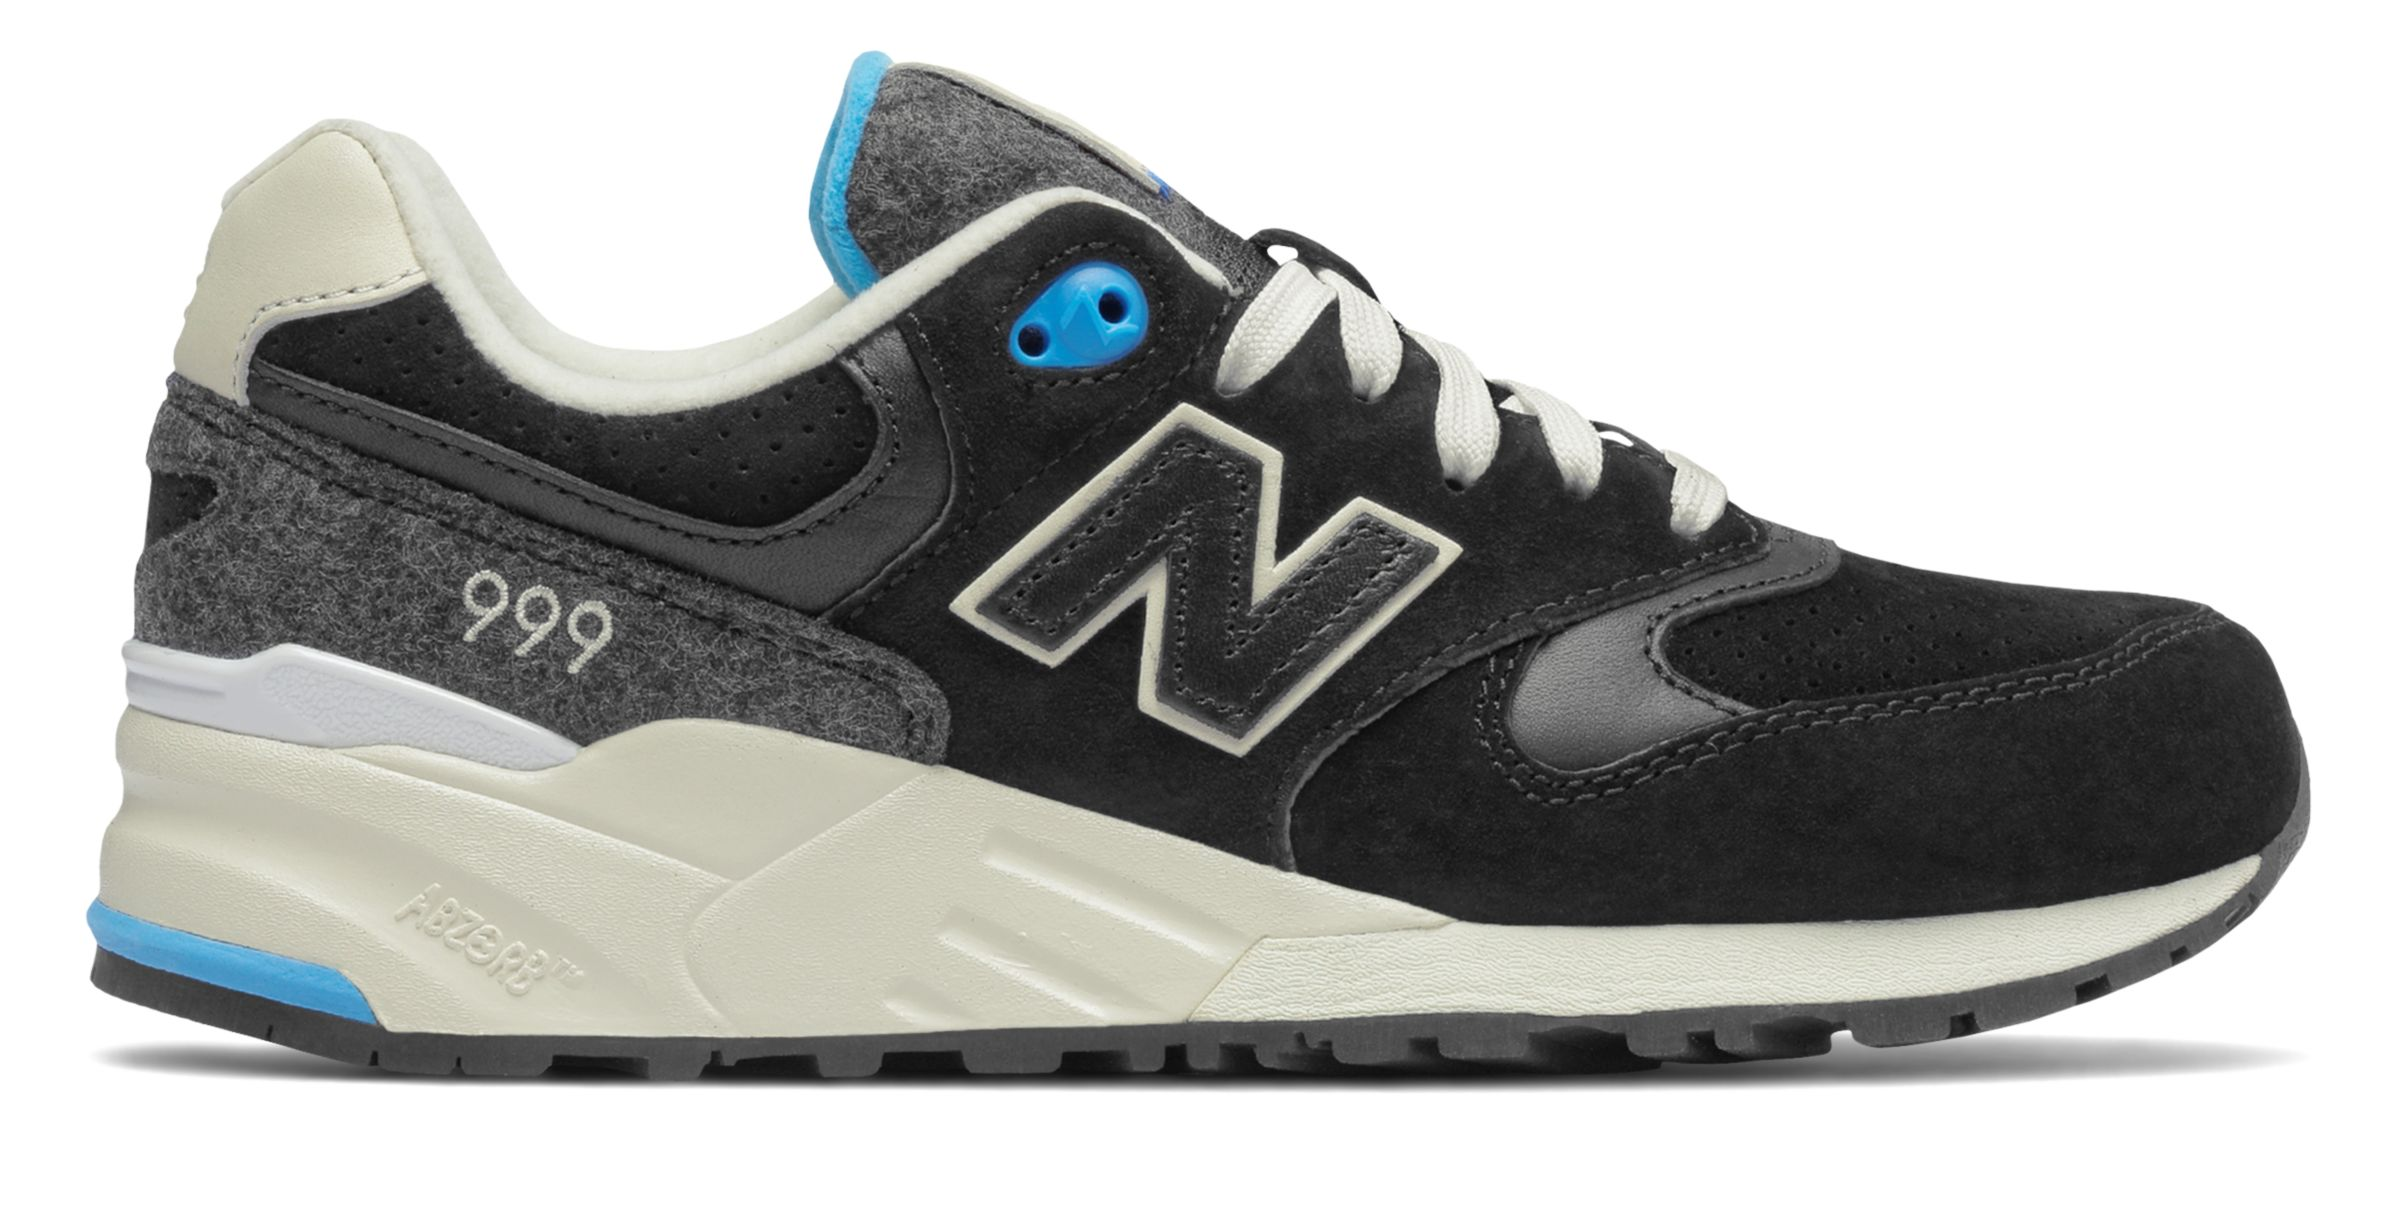 Click here for New Balance 999 New Balance Women's Shoes WL999MMA prices